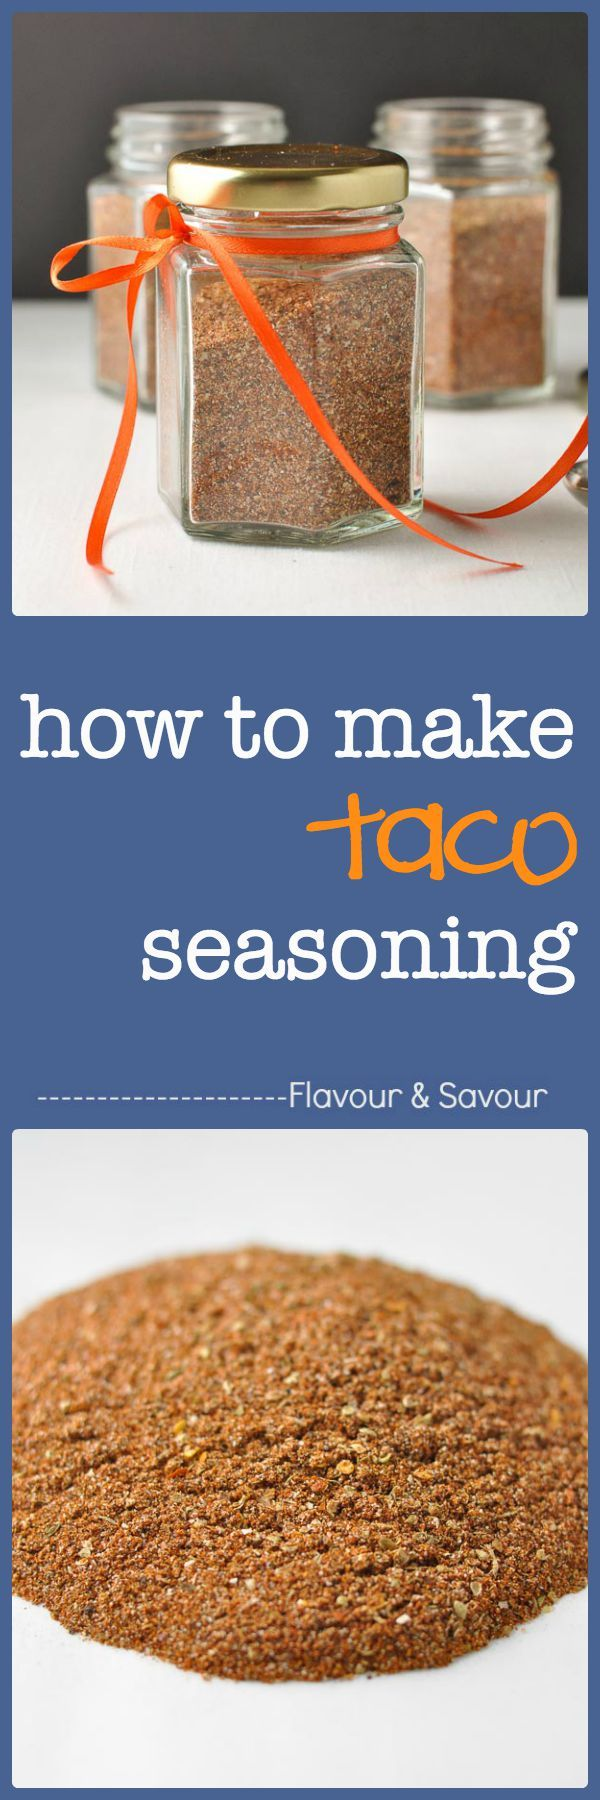 Clean-eating, homemade taco seasoning! Takes less than 5 minutes. You'll never have to buy the packaged mix again.